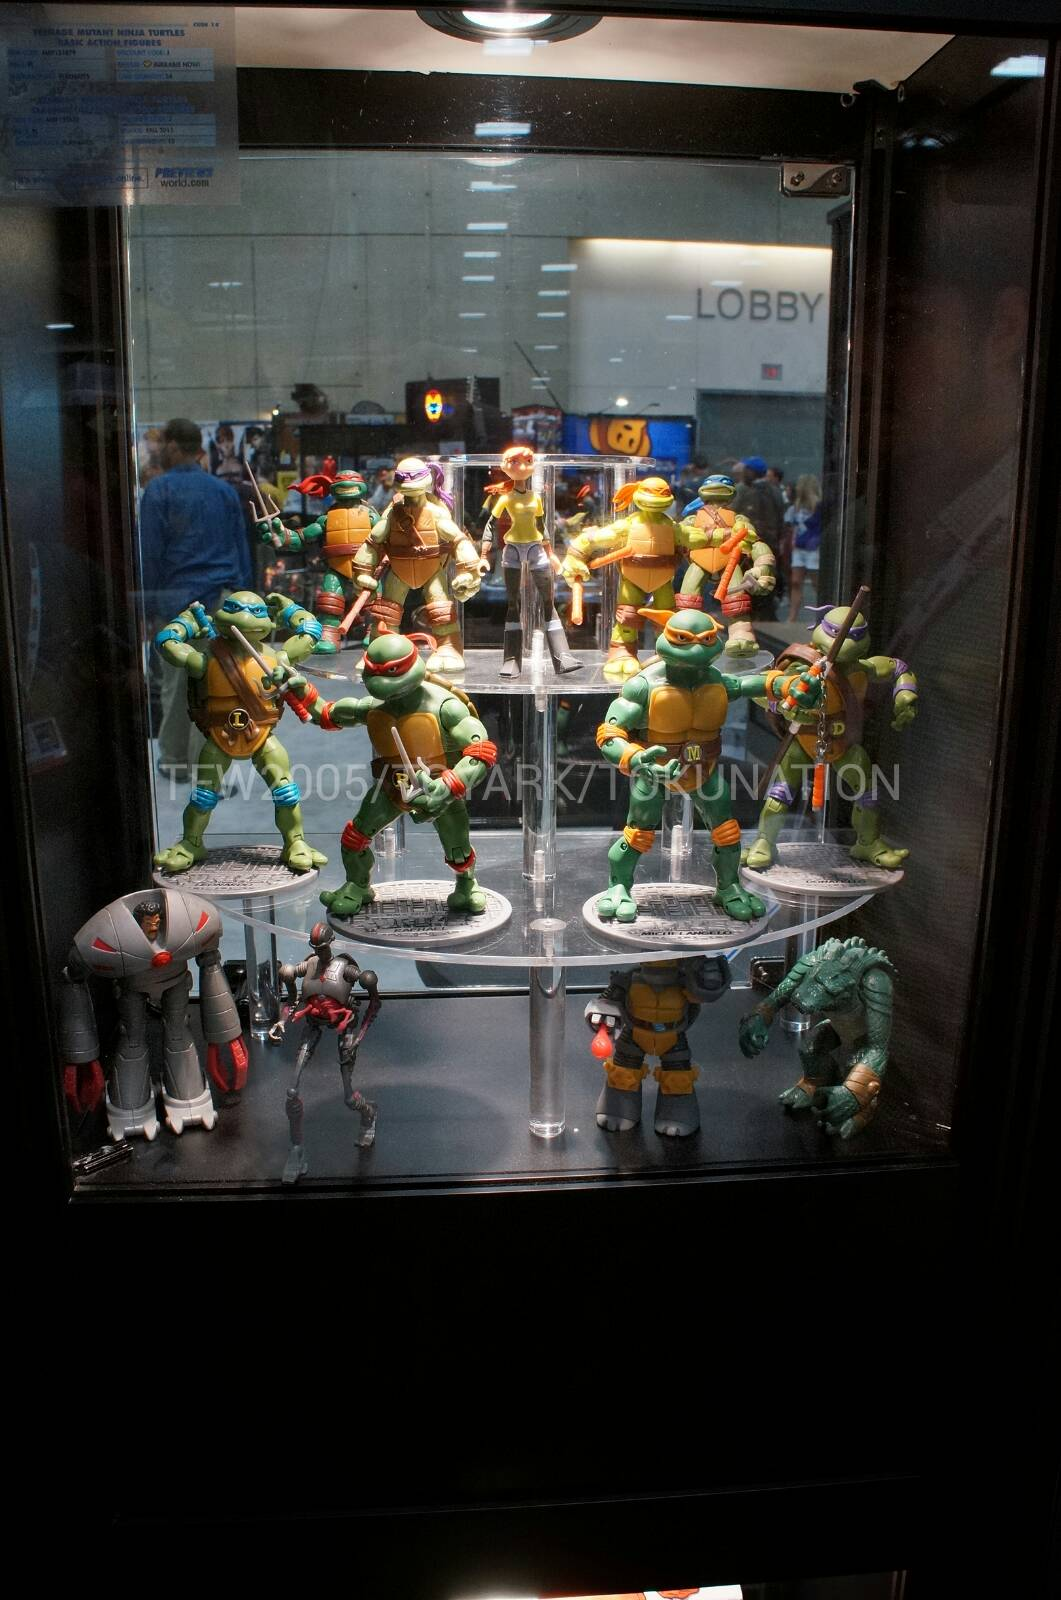 SDCC 2013 - Diamond Comics Closer Look At TMNT Display - The